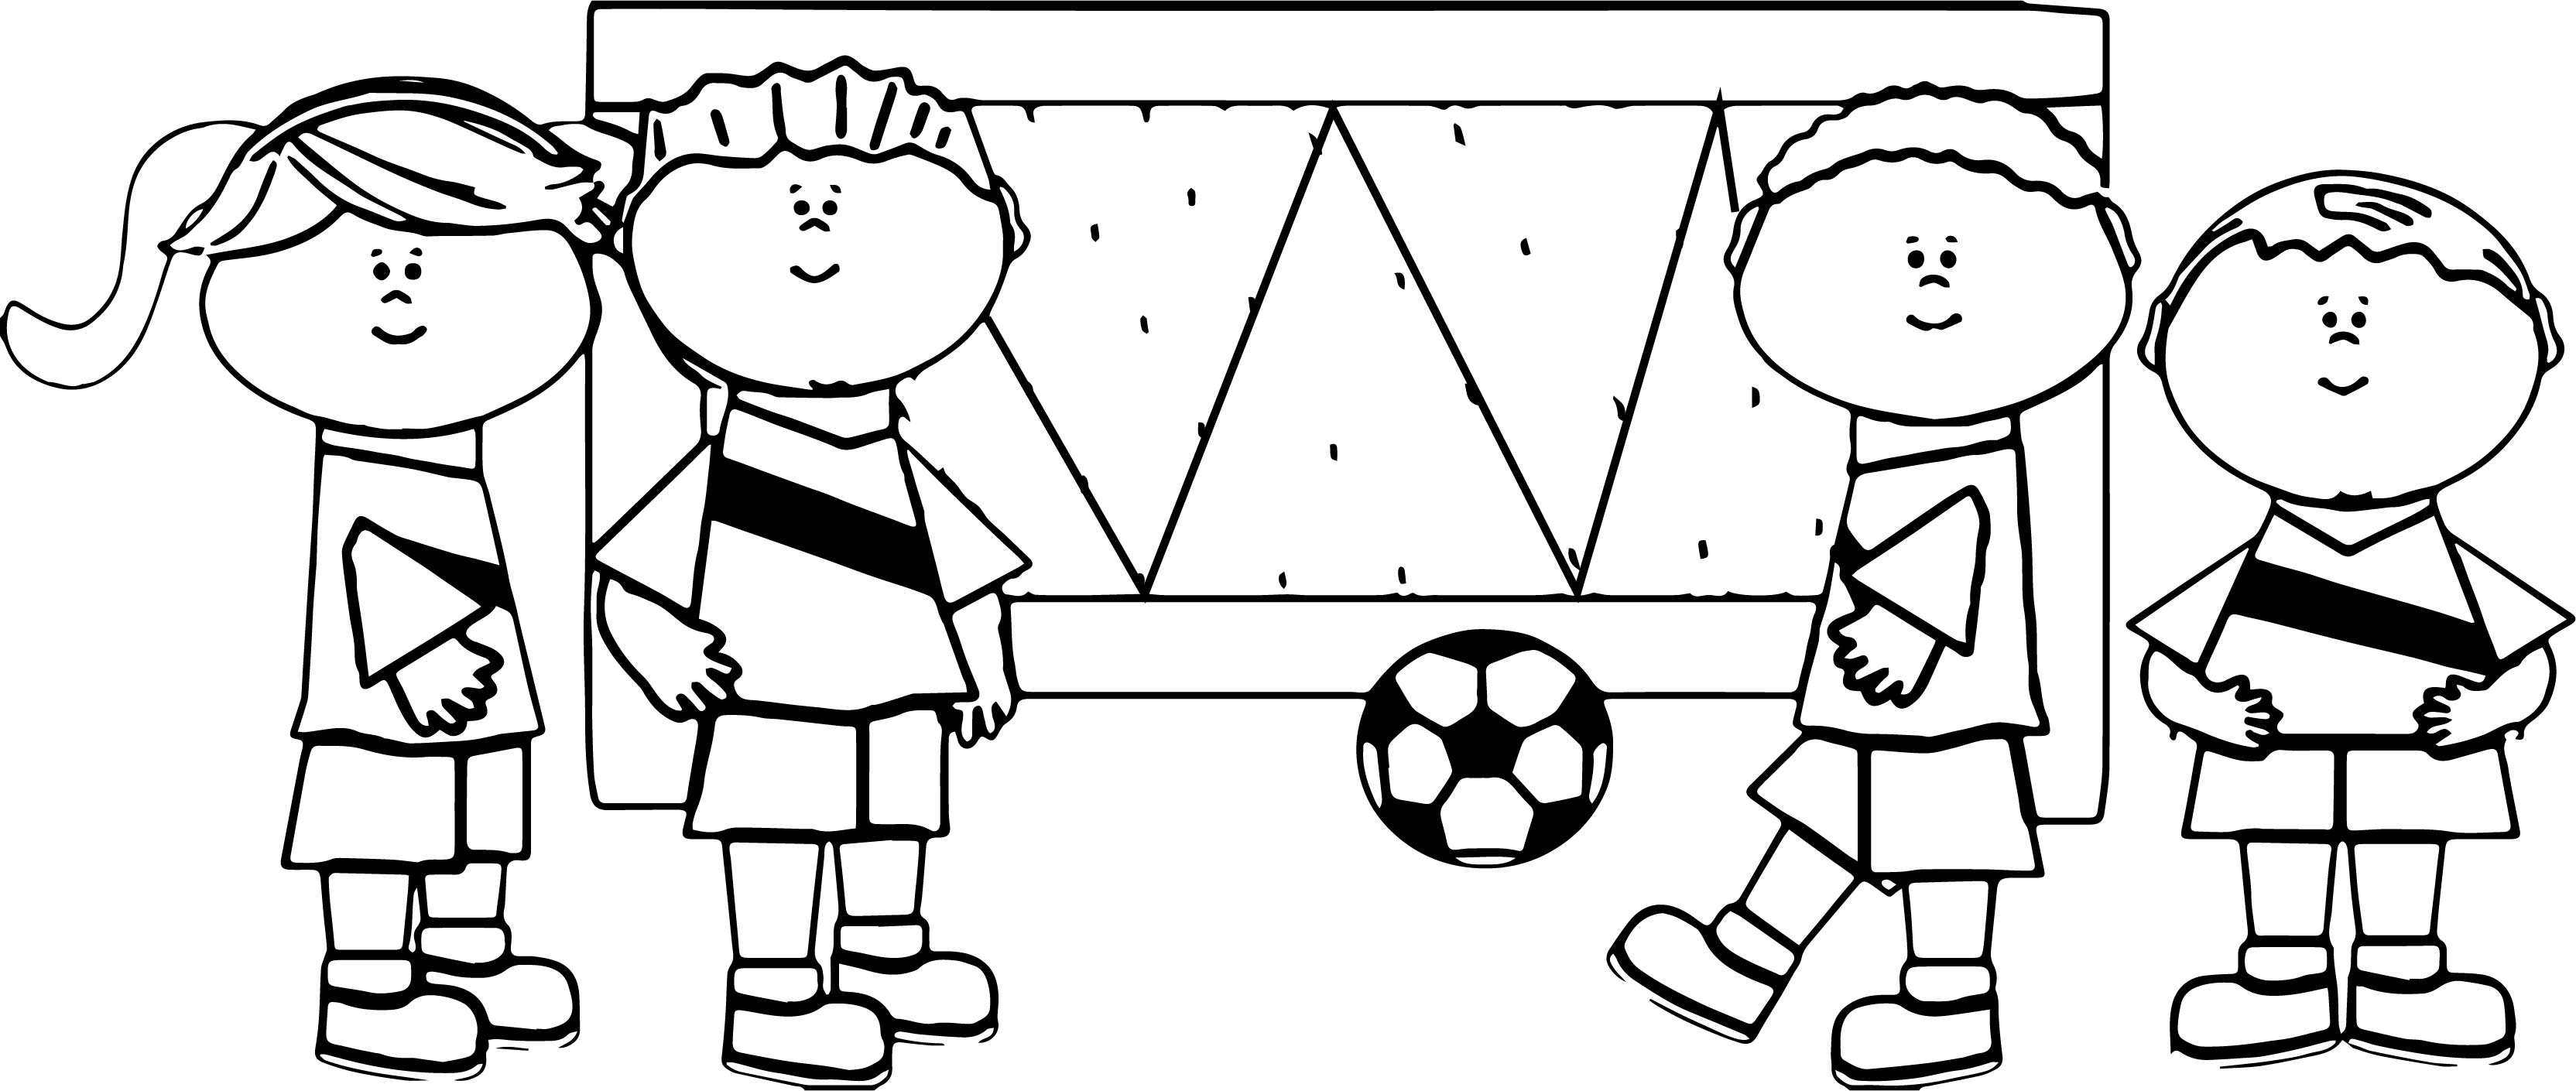 kids playing soccer football coloring page wecoloringpage